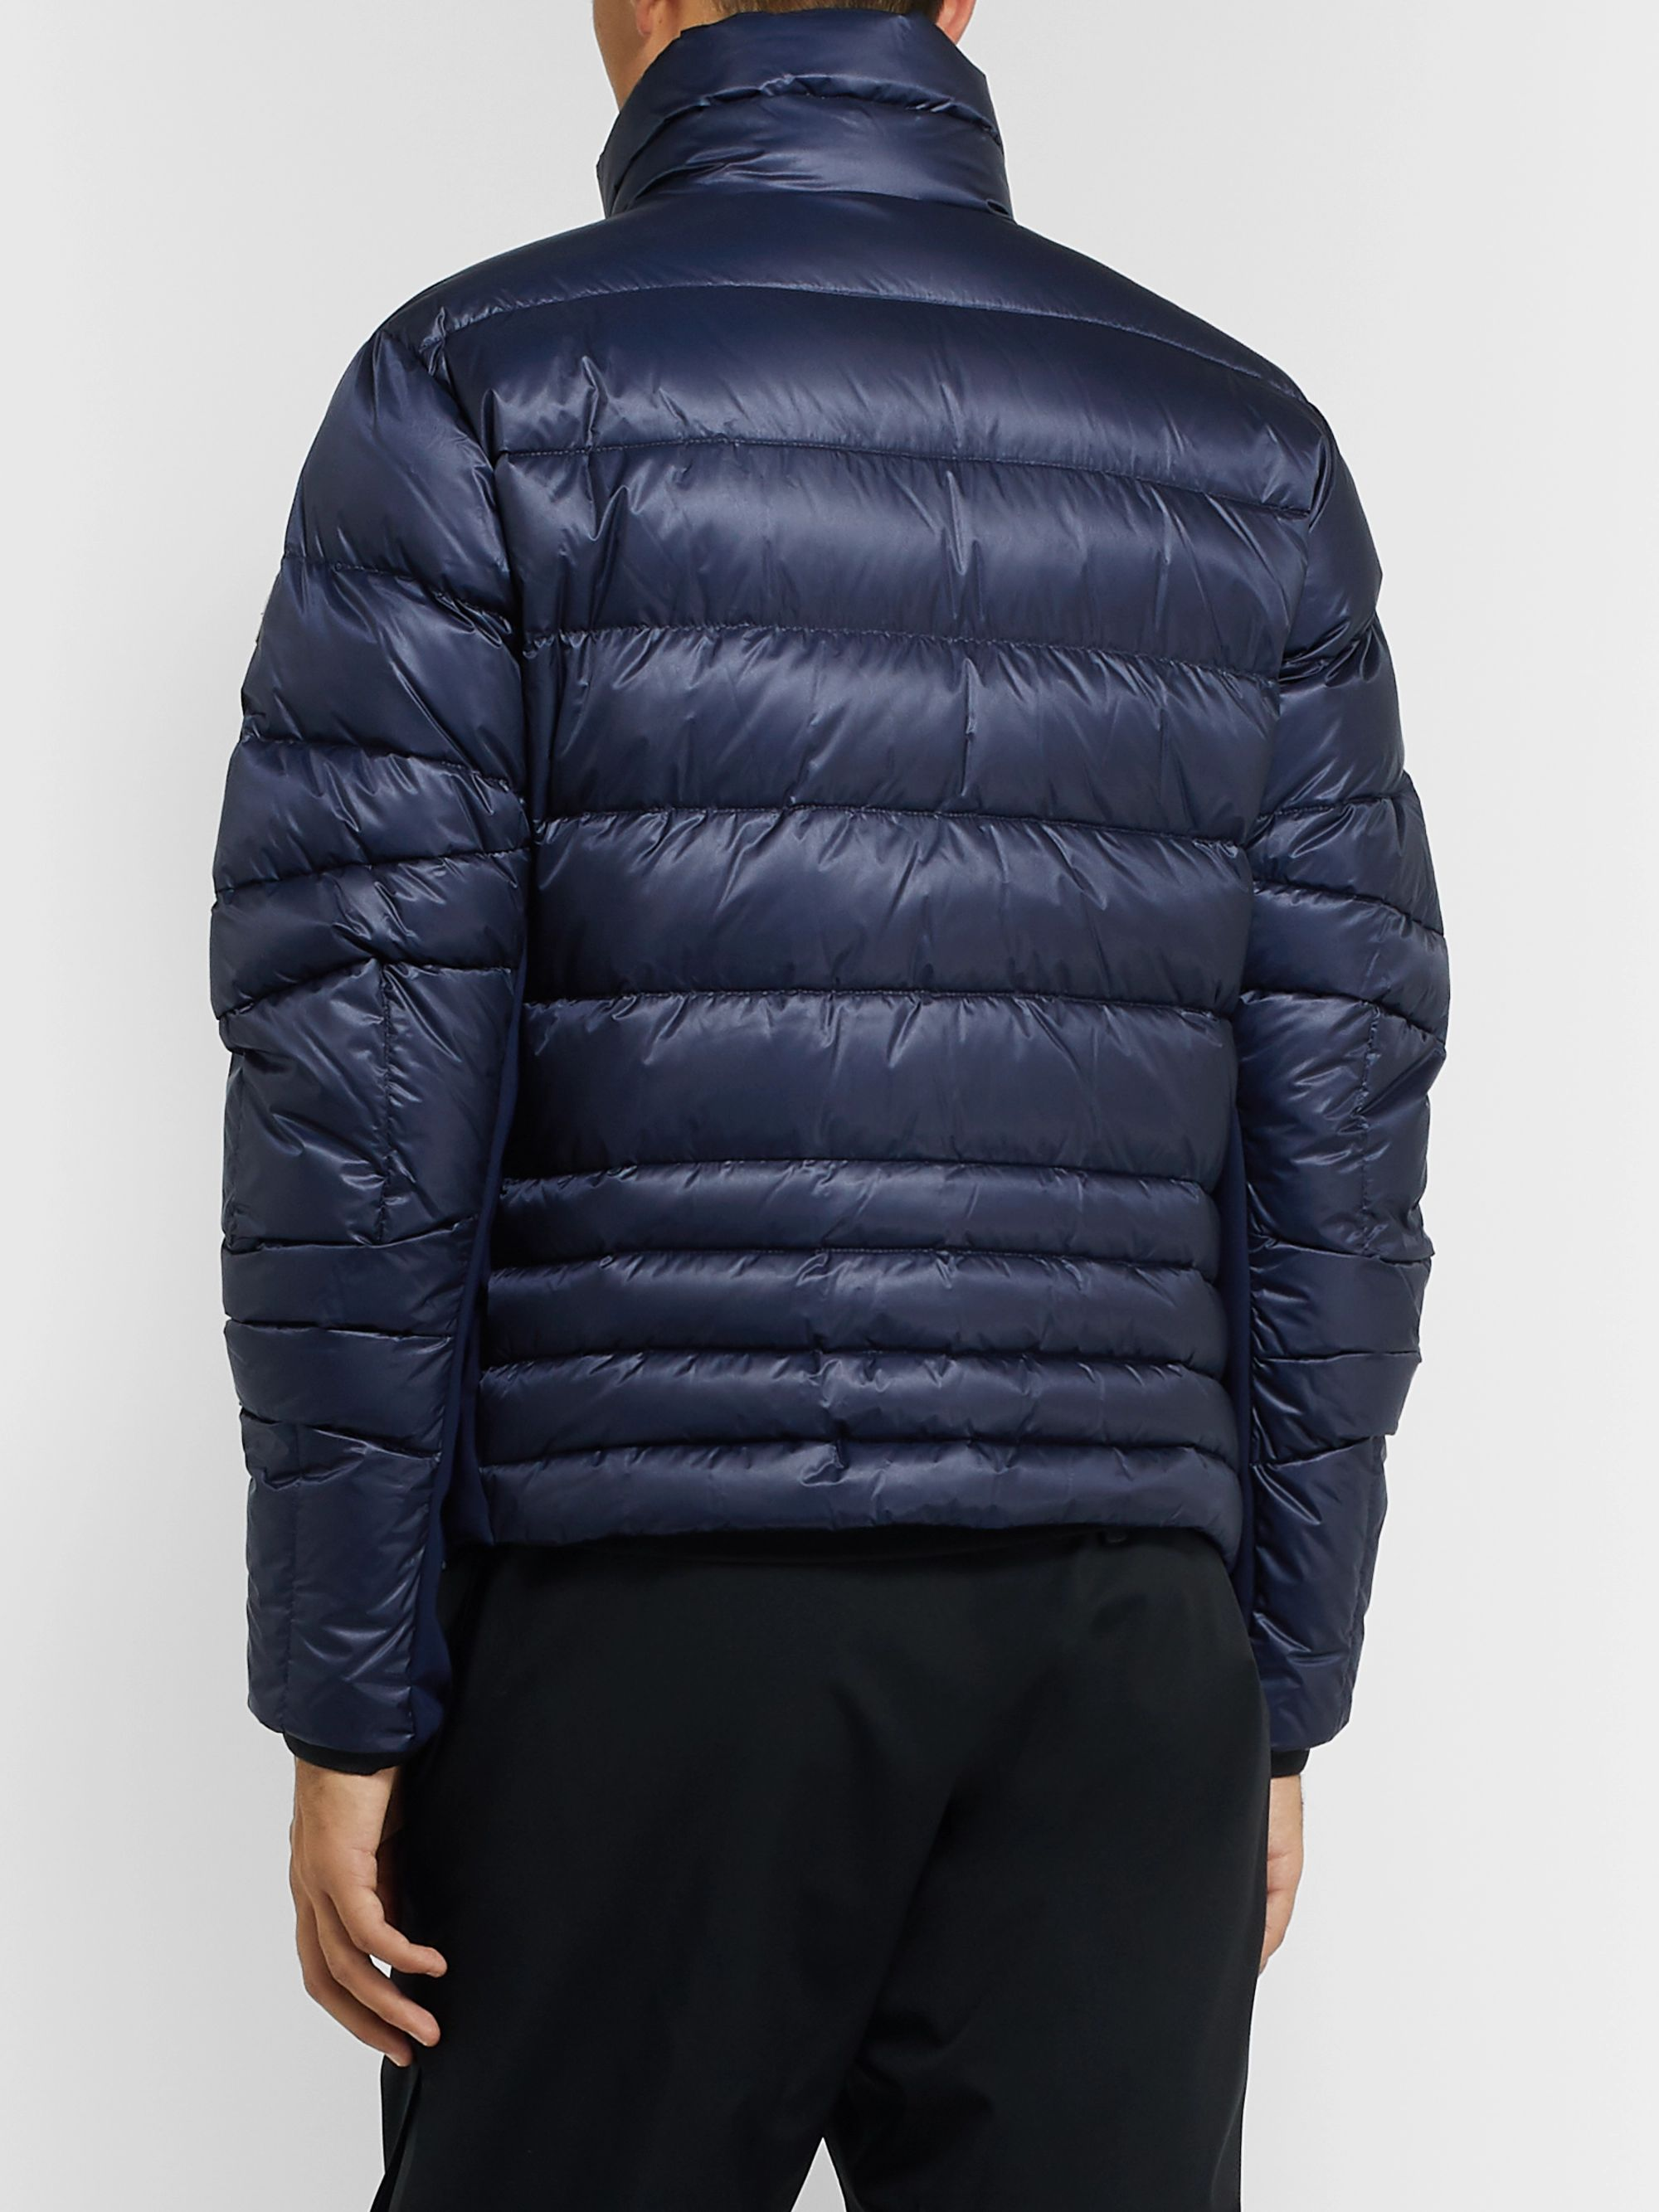 Moncler Grenoble Canmore Quilted Nylon Down Ski Jacket